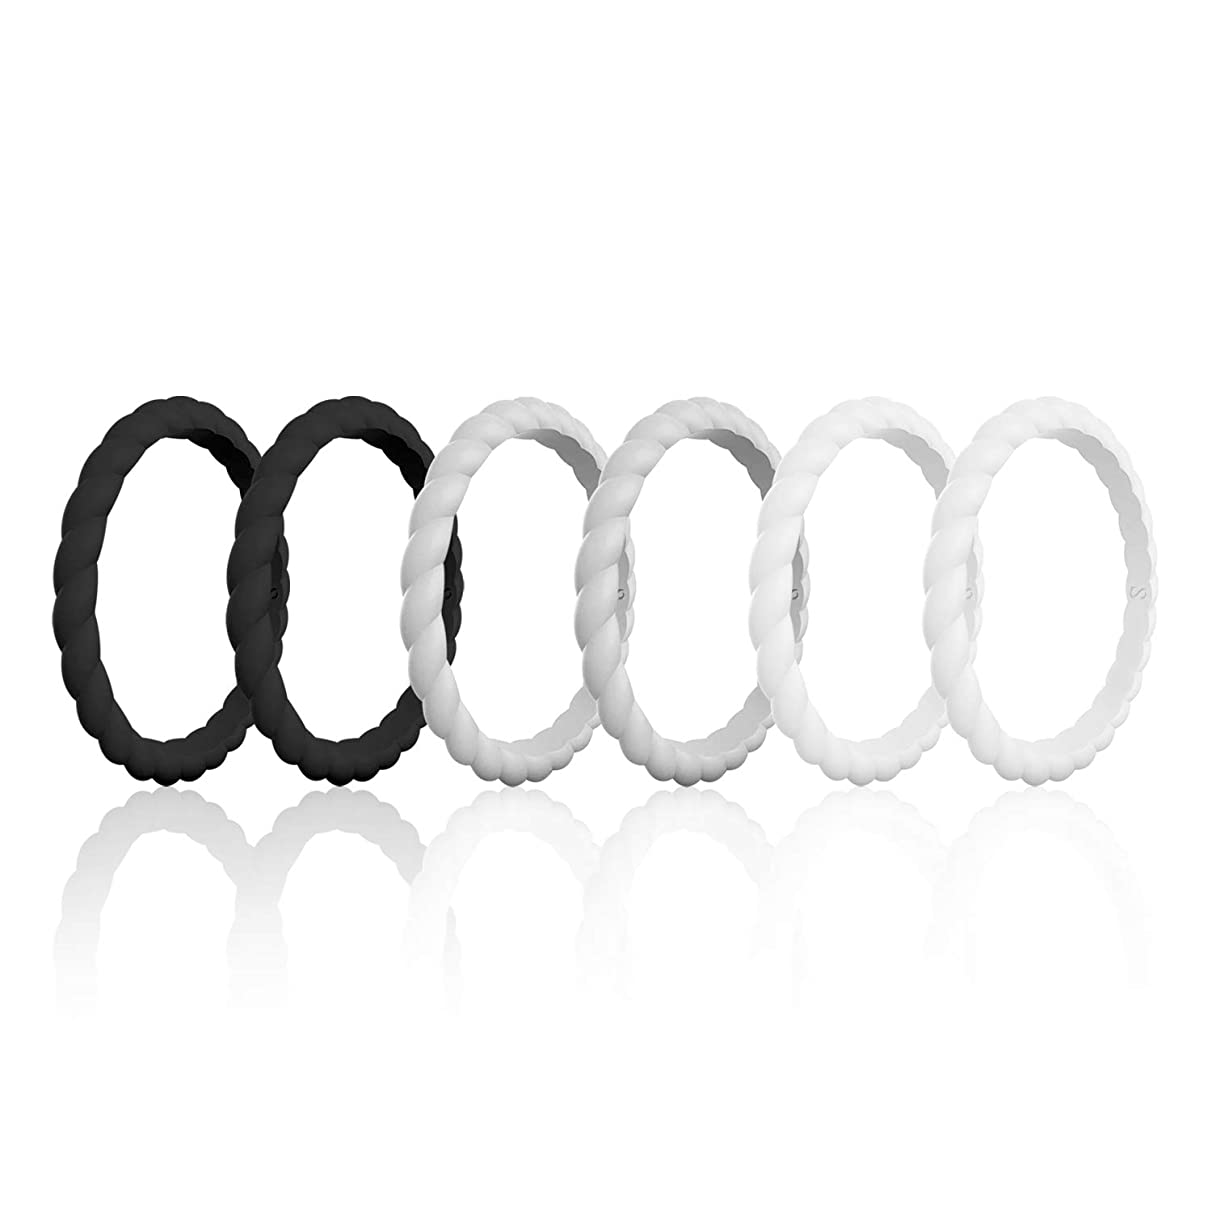 SANXIULY Womens Functional Silicone Ring&Rubber Wedding Bands for Workout and Sports Width 3mm